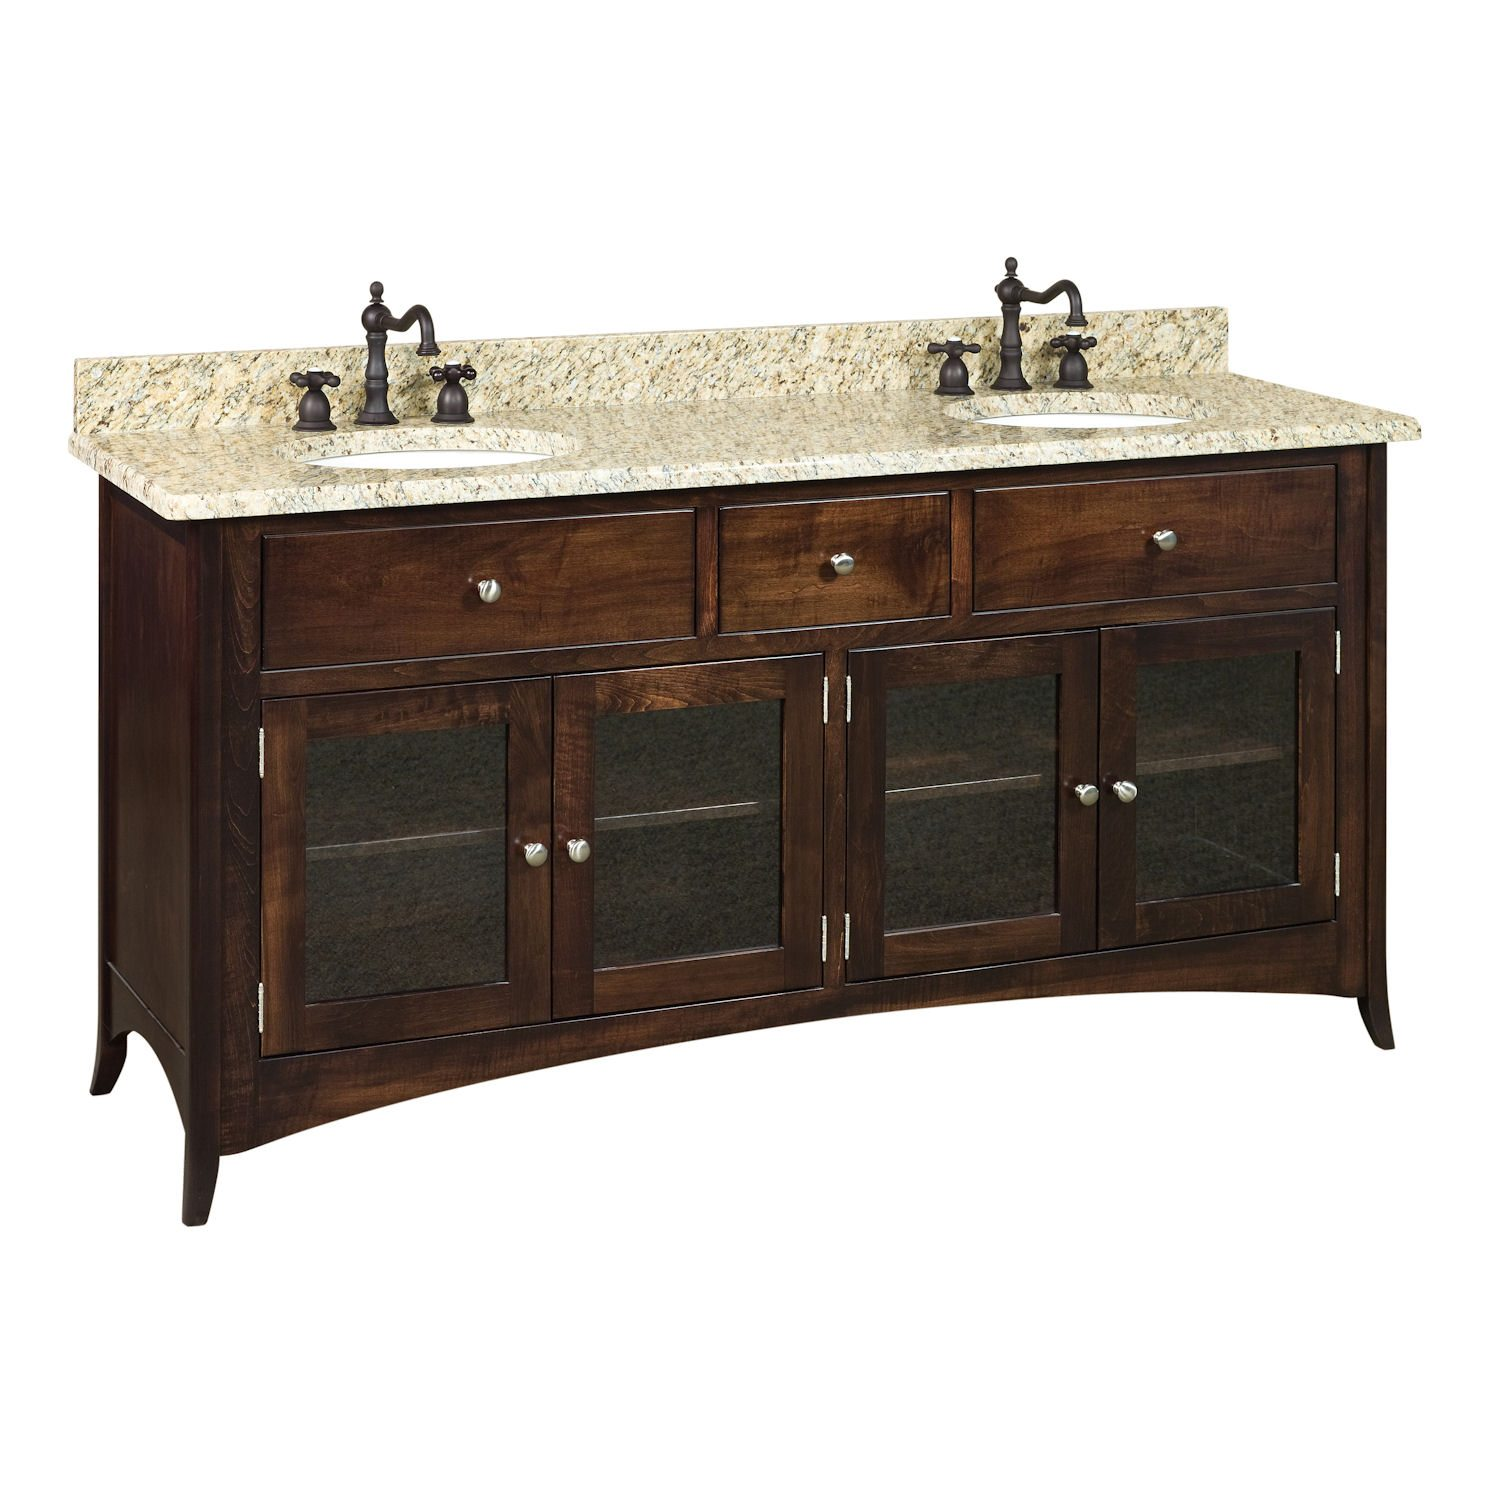 htsrec unique decor com double luxury photos wonderful used sink bathroom of for home plus your pics in vanity